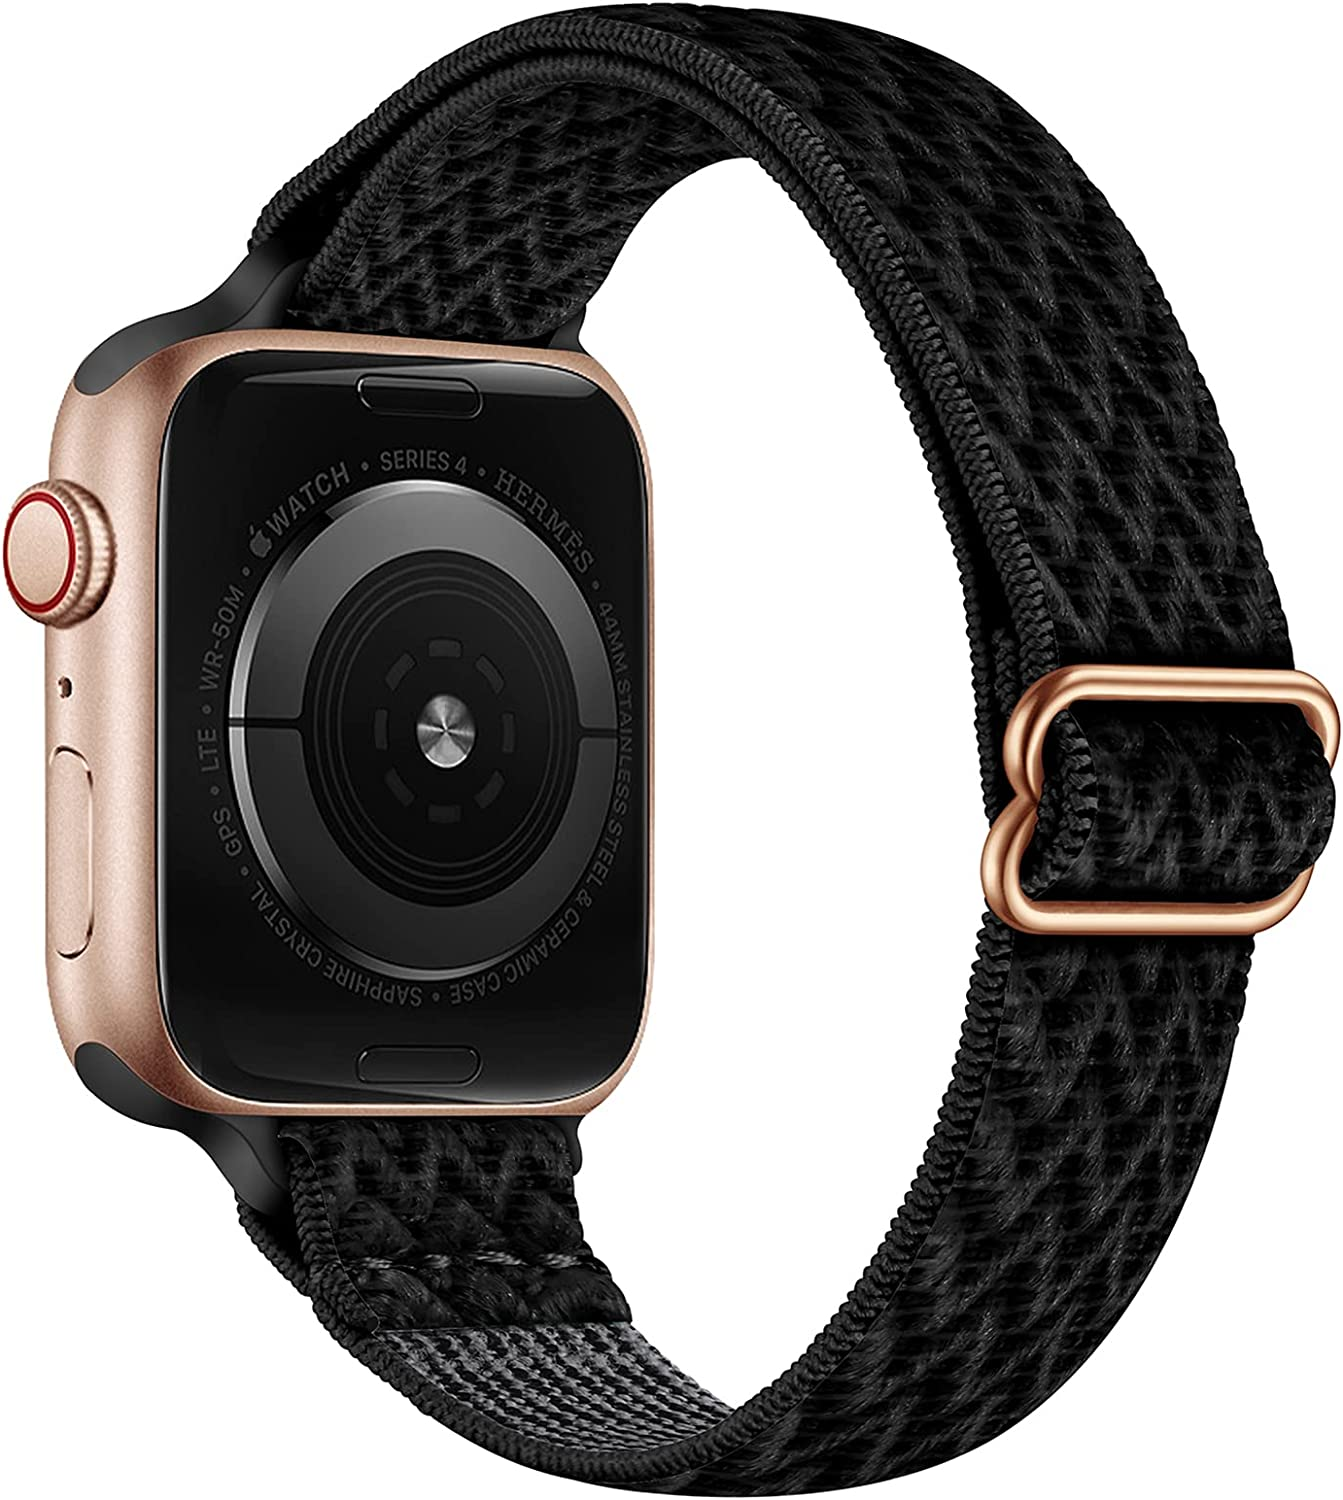 SICCIDEN Slim Stretchy Bands Compatible with Apple Watch Band 41mm 40mm 38mm 45mm 44mm 42mm, Elastics Nylon Thin Band Strap for iWatch SE Series 7 6 5 4 3 2 1 (Dark Black/Rose Gold, 41mm 40mm 38mm)